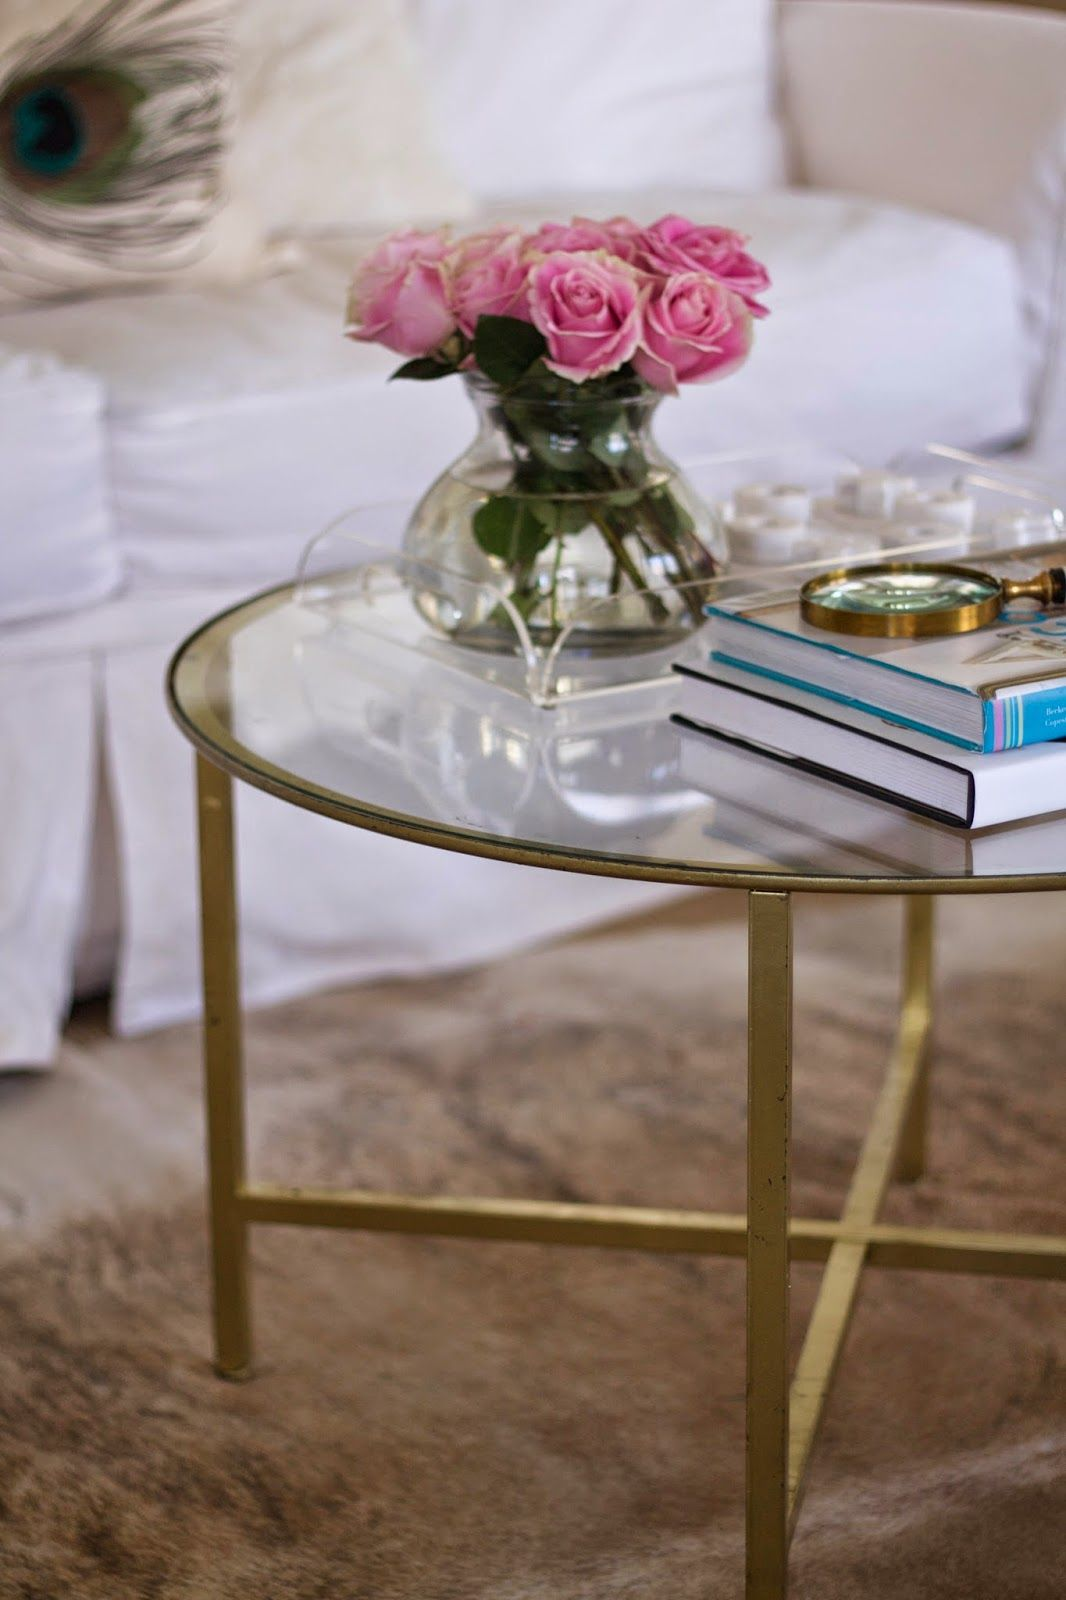 Ikea Vittsjo Coffee Table Ikea Coffee Table Hack | Park Avenue Favorites | Pinterest